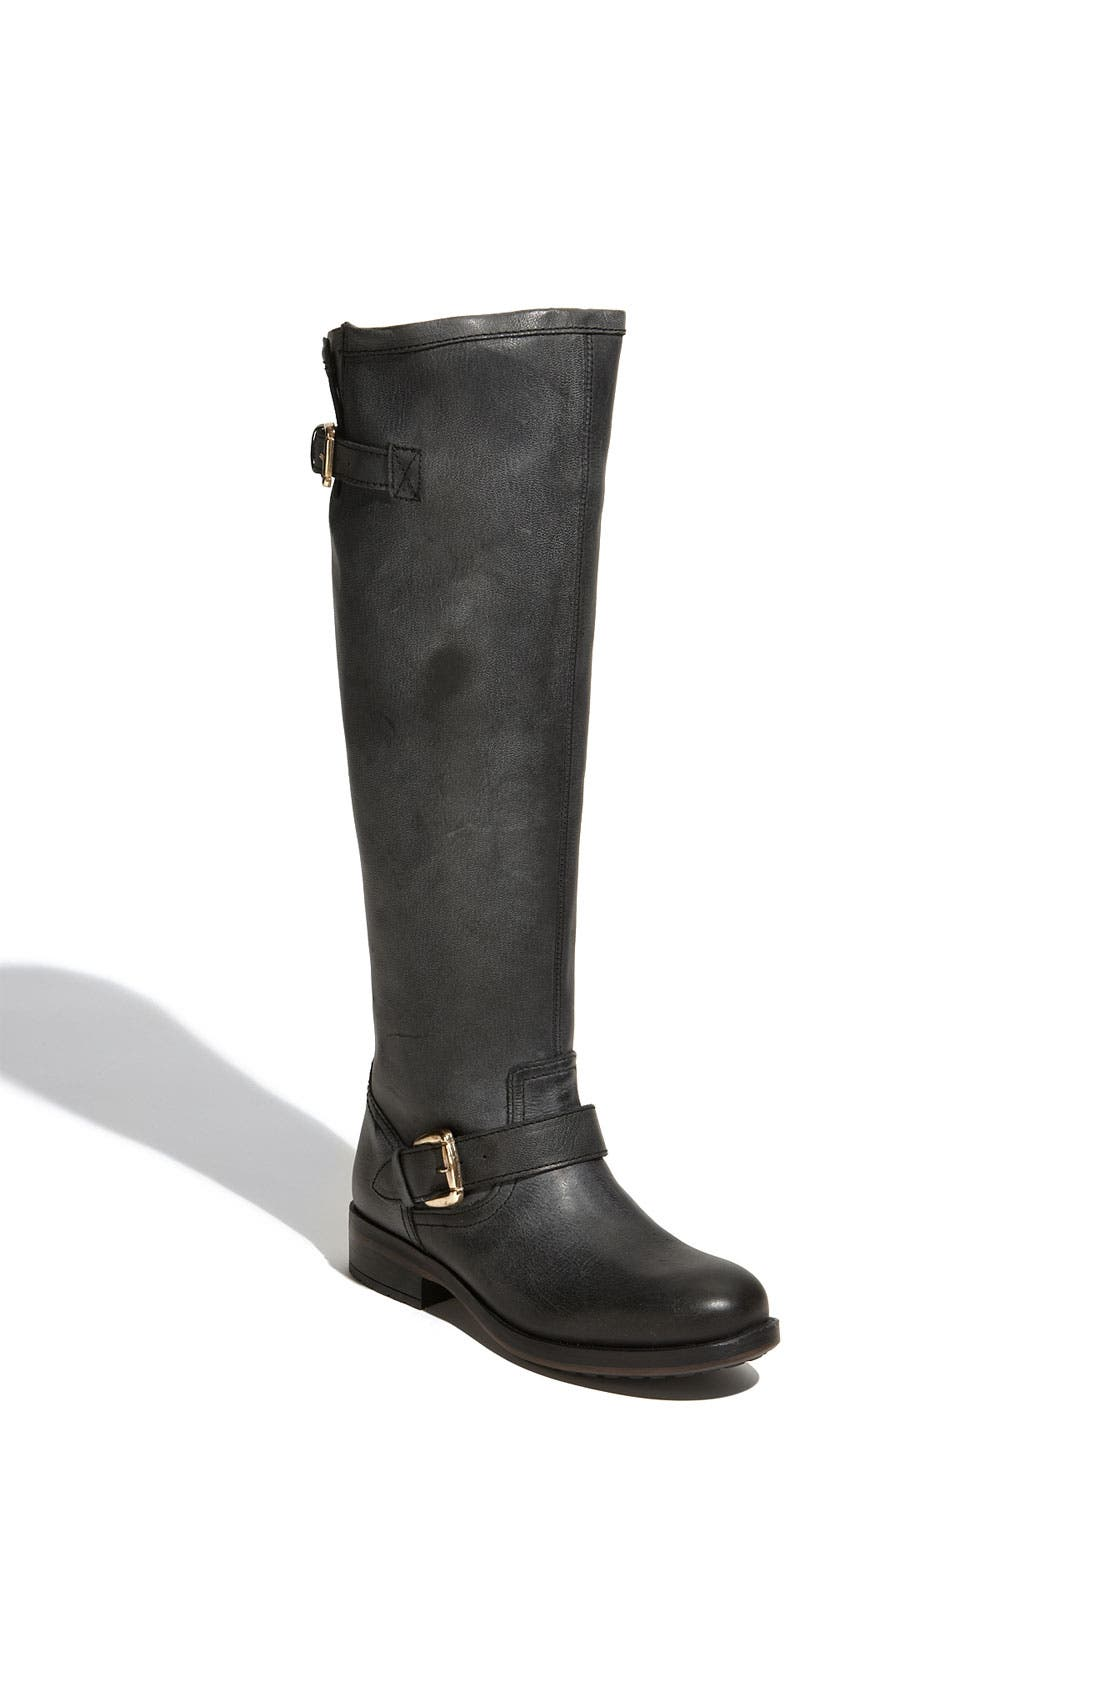 Alternate Image 1 Selected - Steve Madden 'Lindley' Contrast Zip Boot